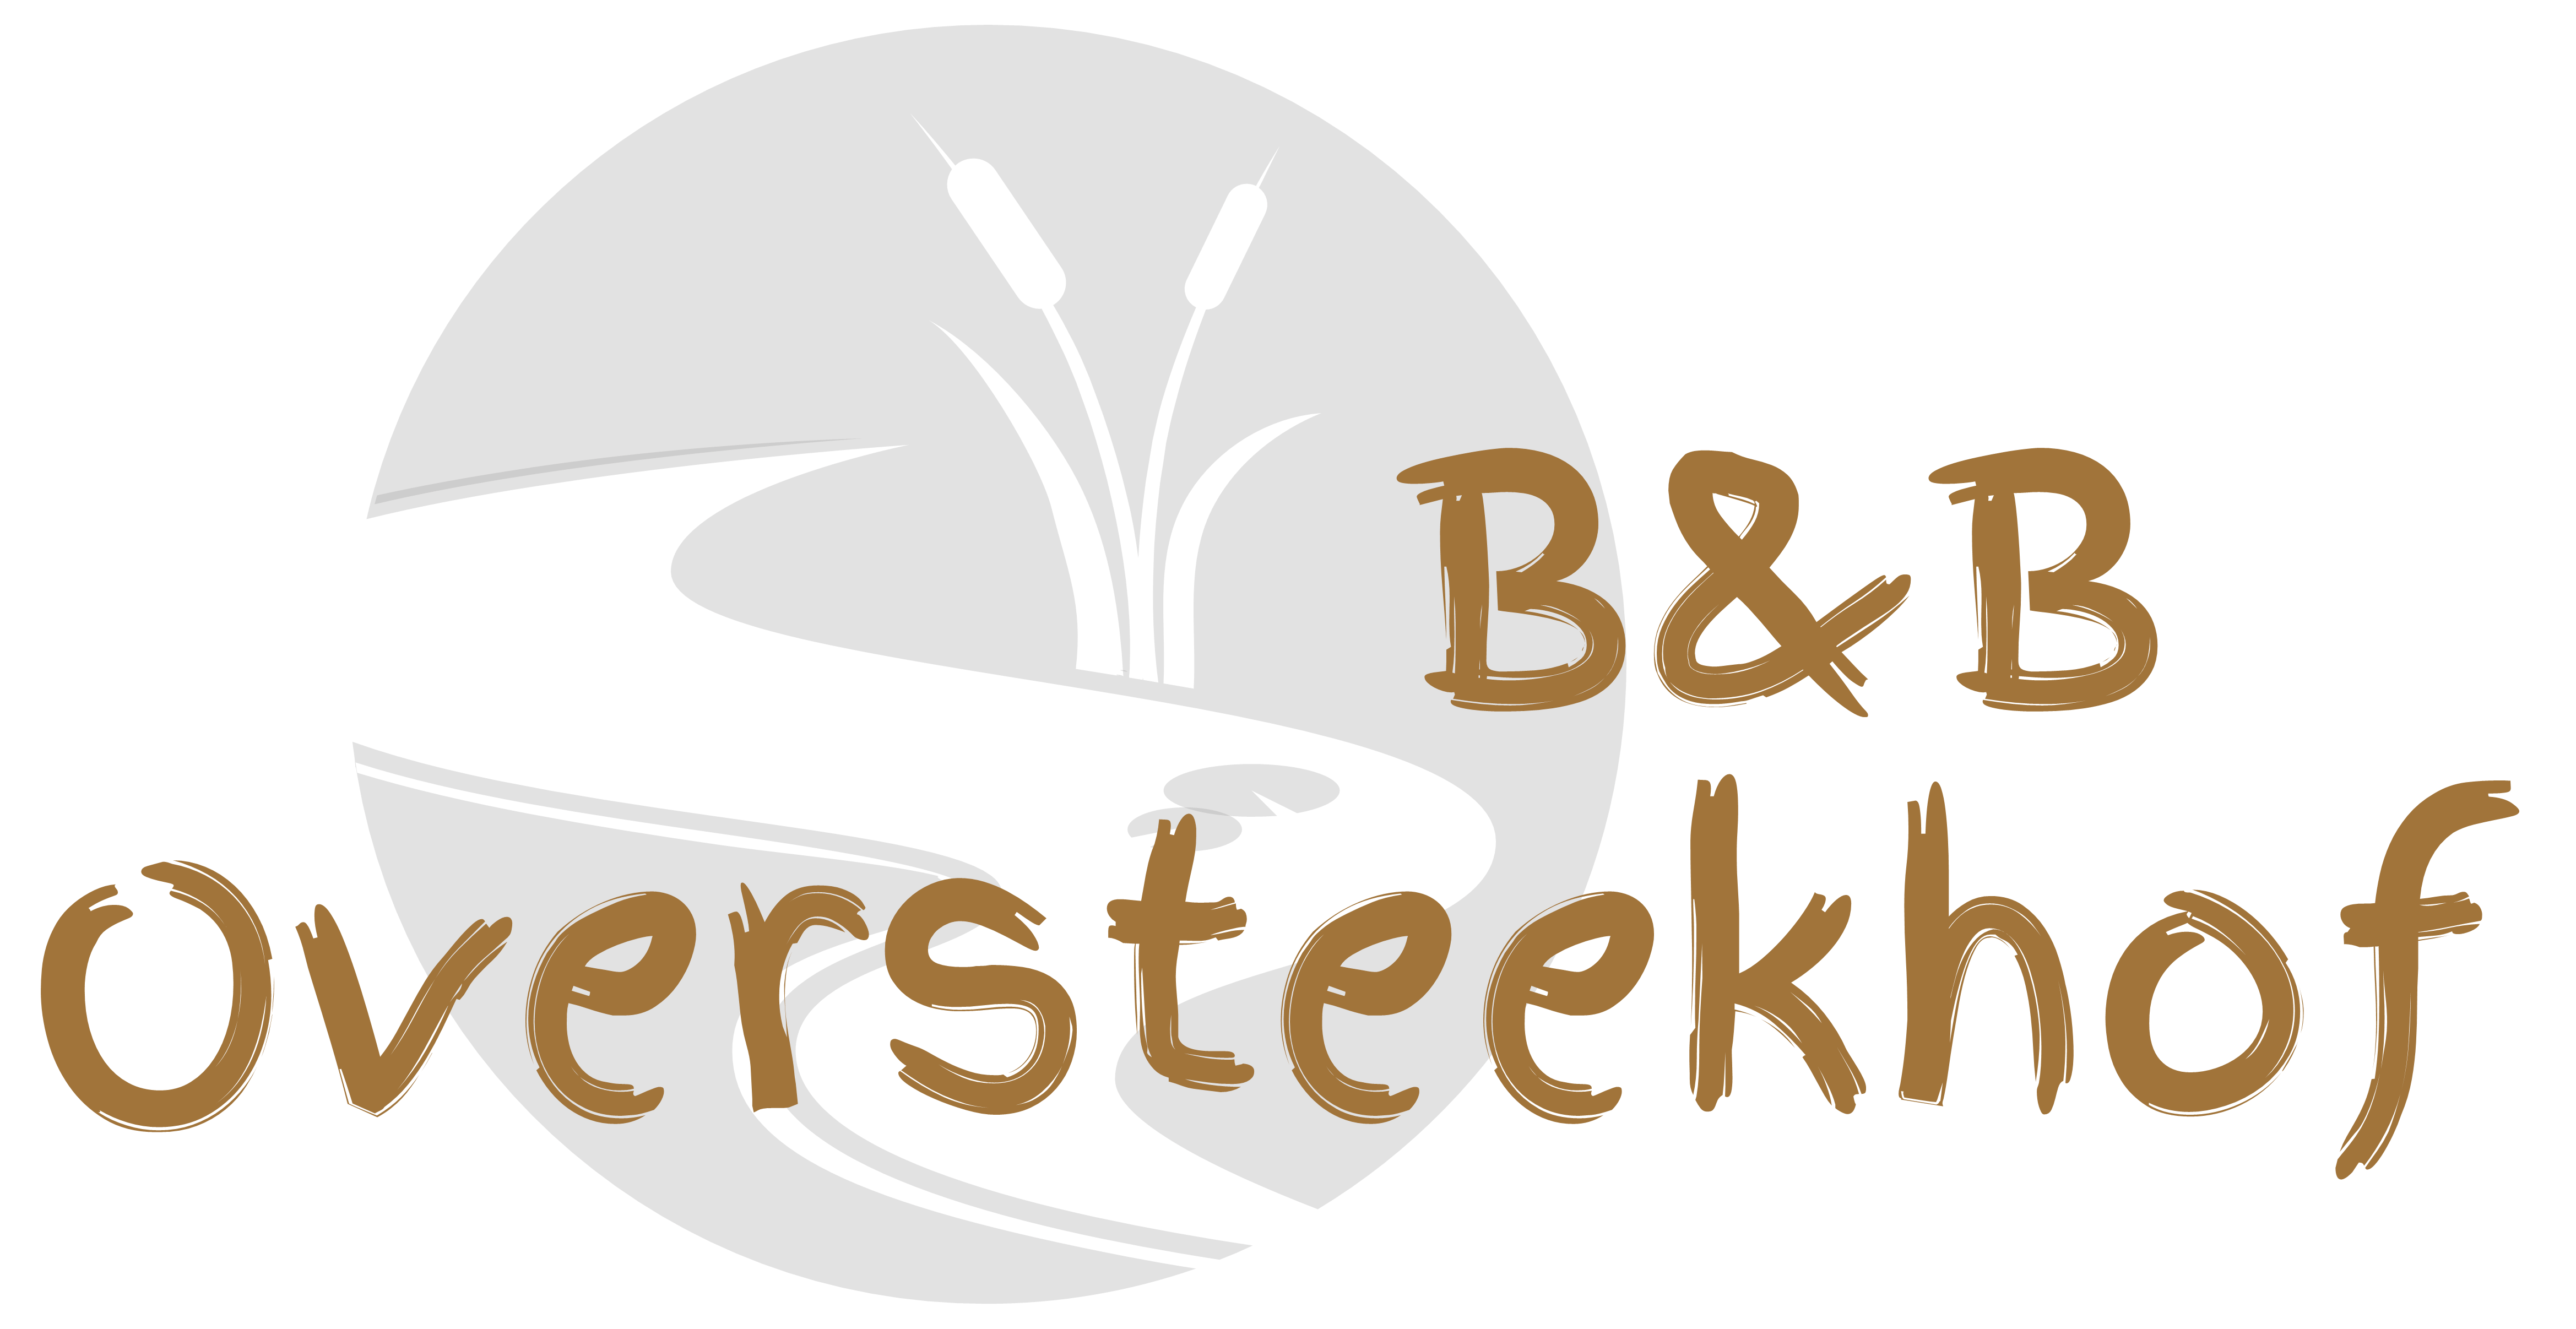 B&B Oversteekhof | Bed and Breakfast Roesbrugge | Westhoek | Ijzer